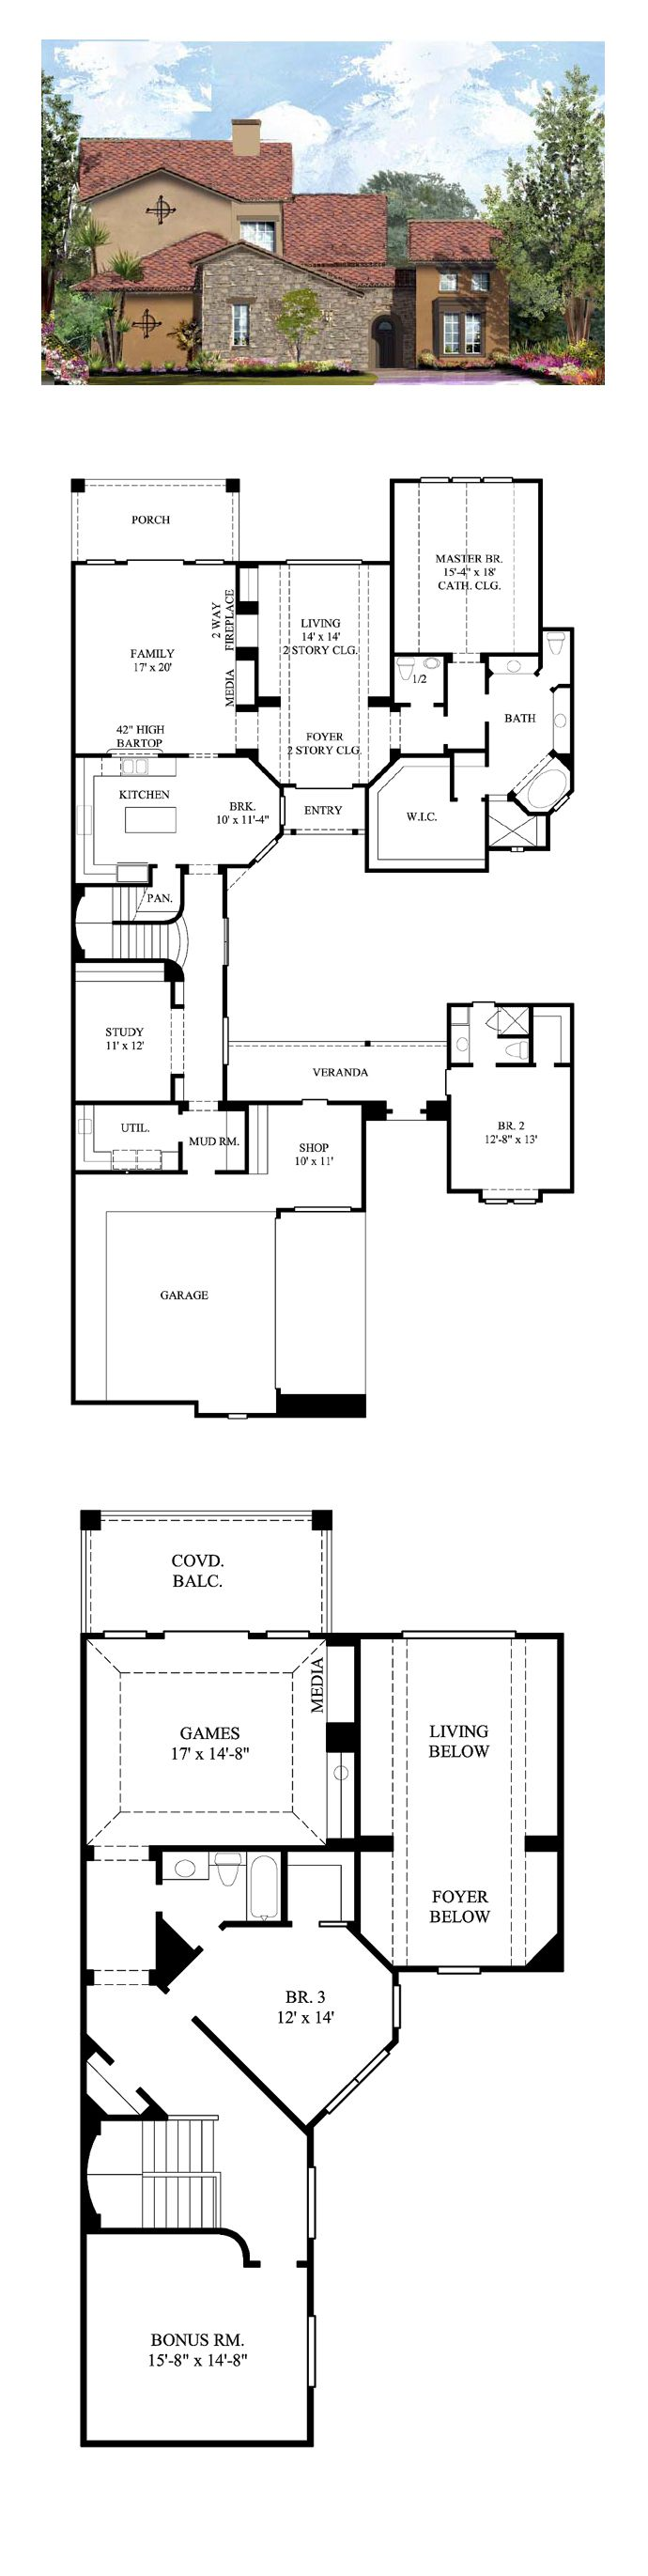 50 best Tuscan House Plans images on Pinterest | Floor plans, Tuscan ...